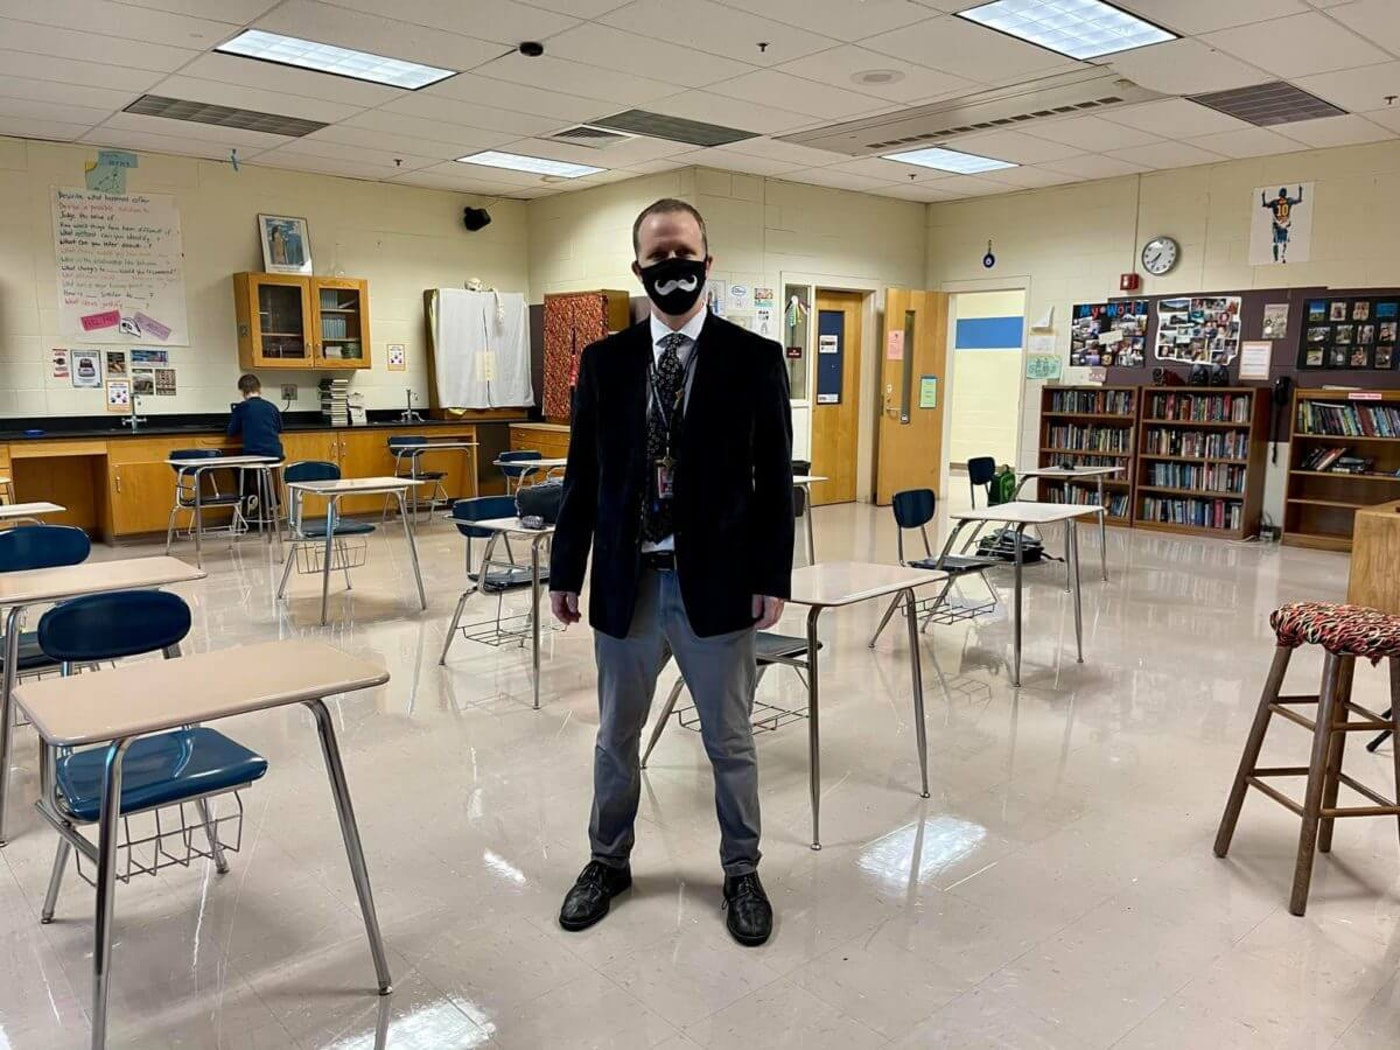 Like many educators in NC's largest city, Charlotte teacher Justin Parmenter returned to the classroom Monday in the midst of a resurgence in the state's COVID cases. (Image via Justin Parmenter)